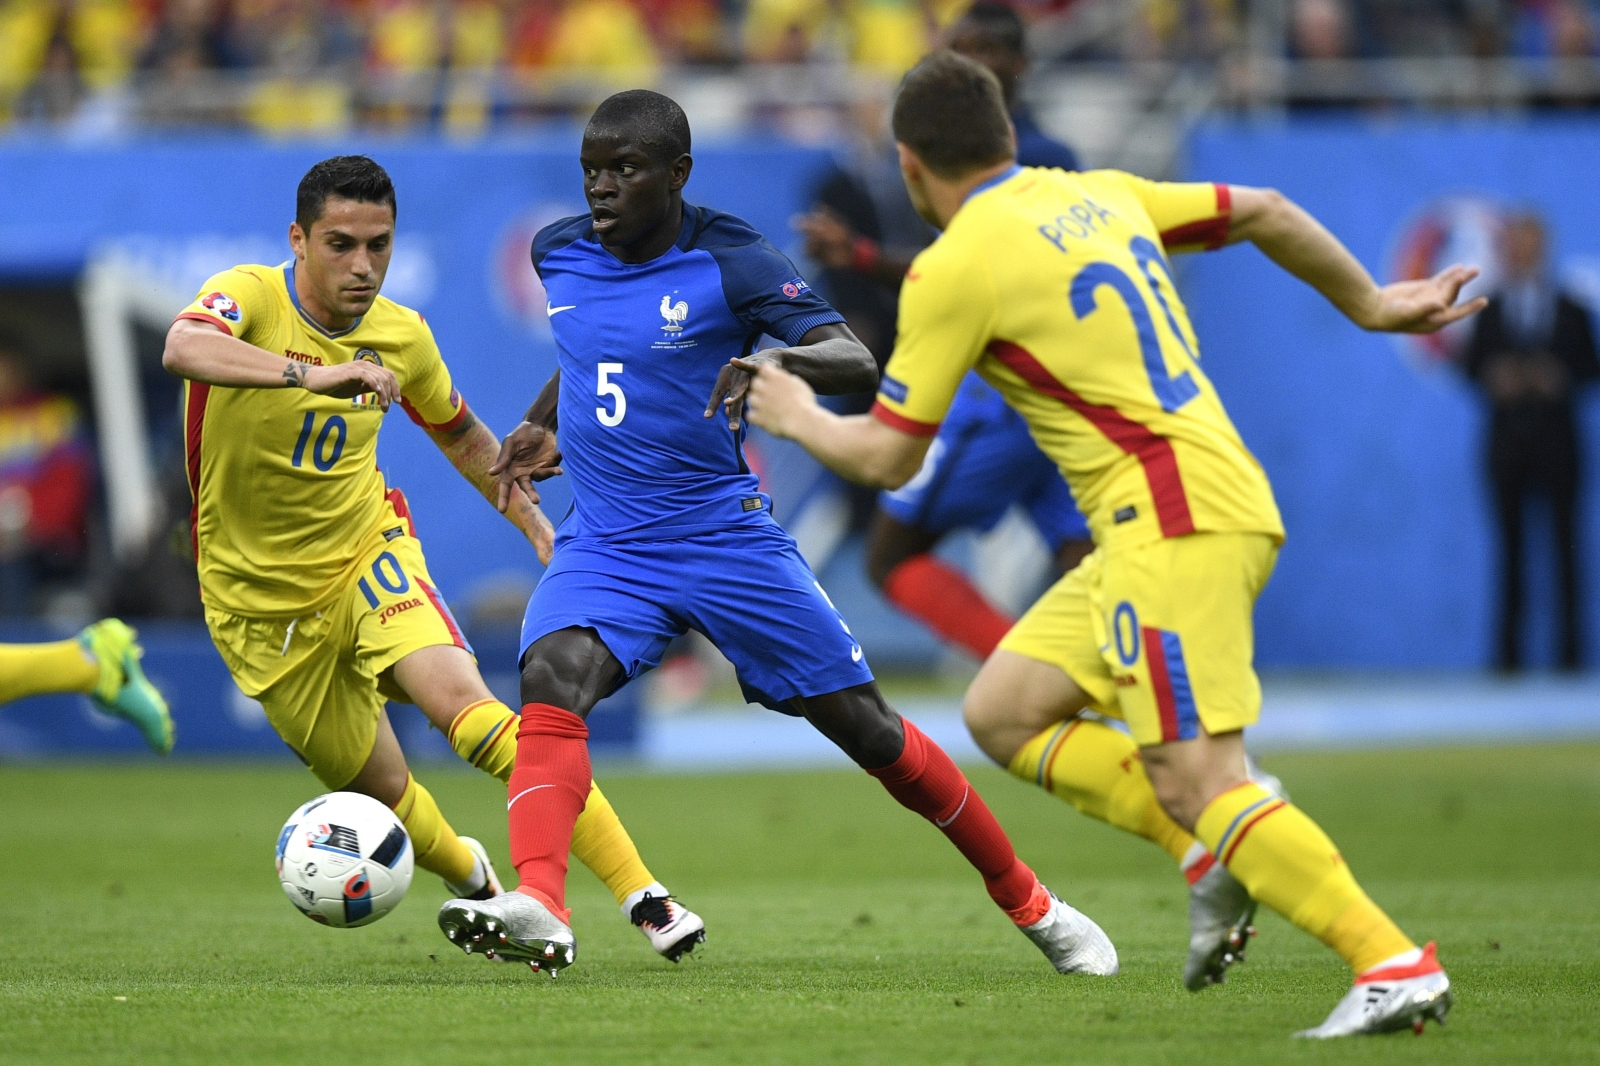 Chelsea set to sign N Golo Kante with £27m bid